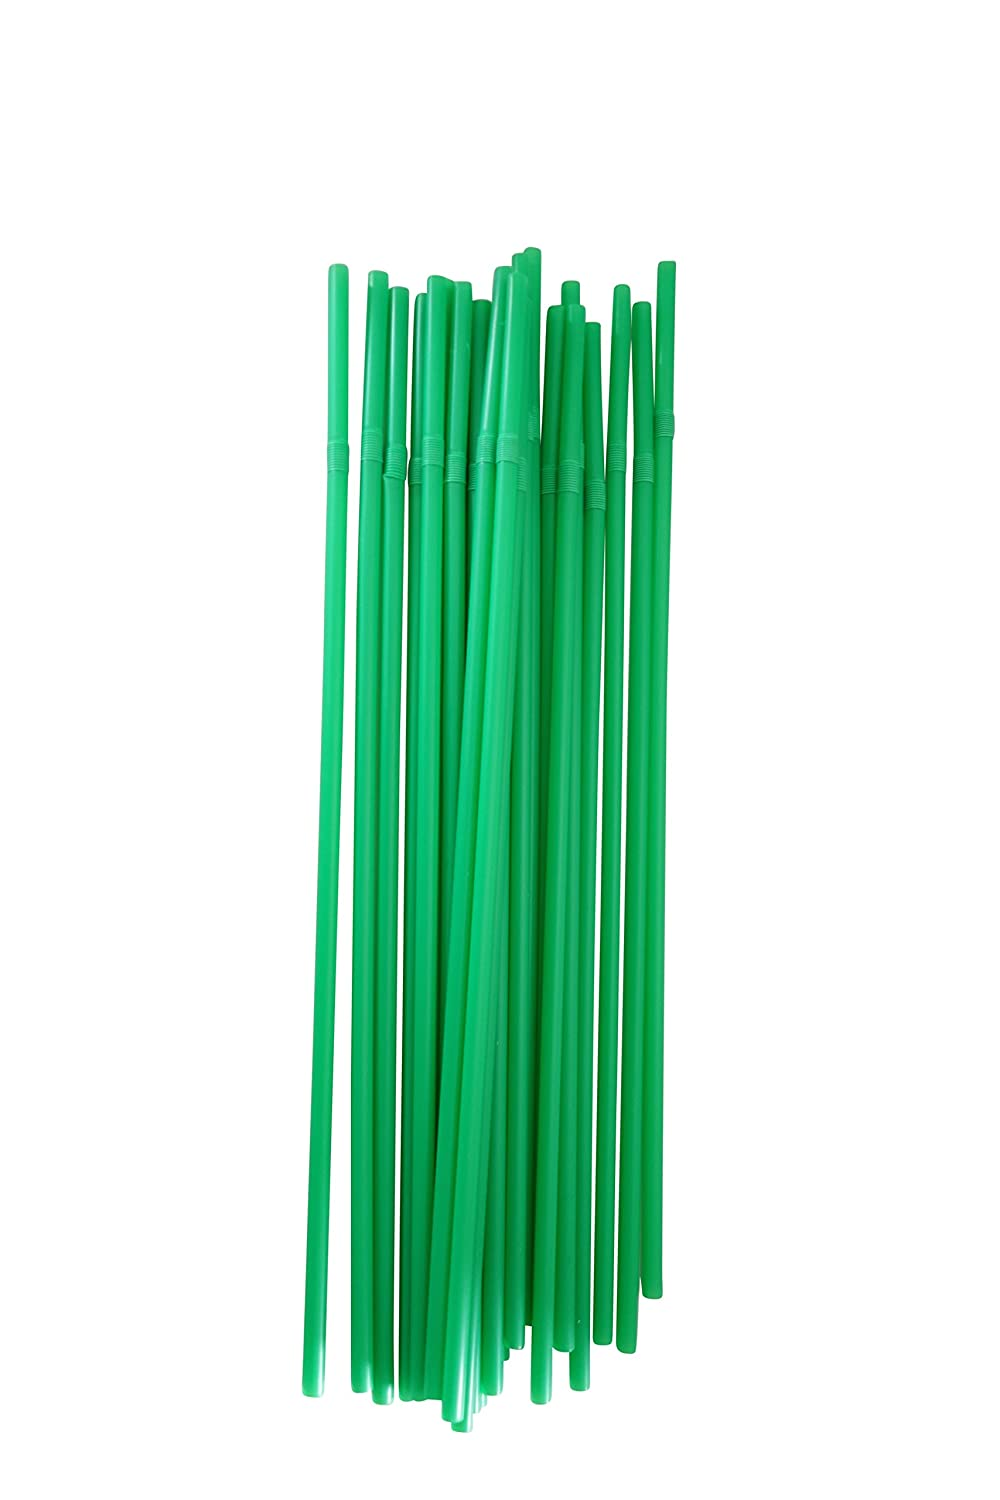 1-Pack 30 Straws in Total Jarritos Perfect Sippers